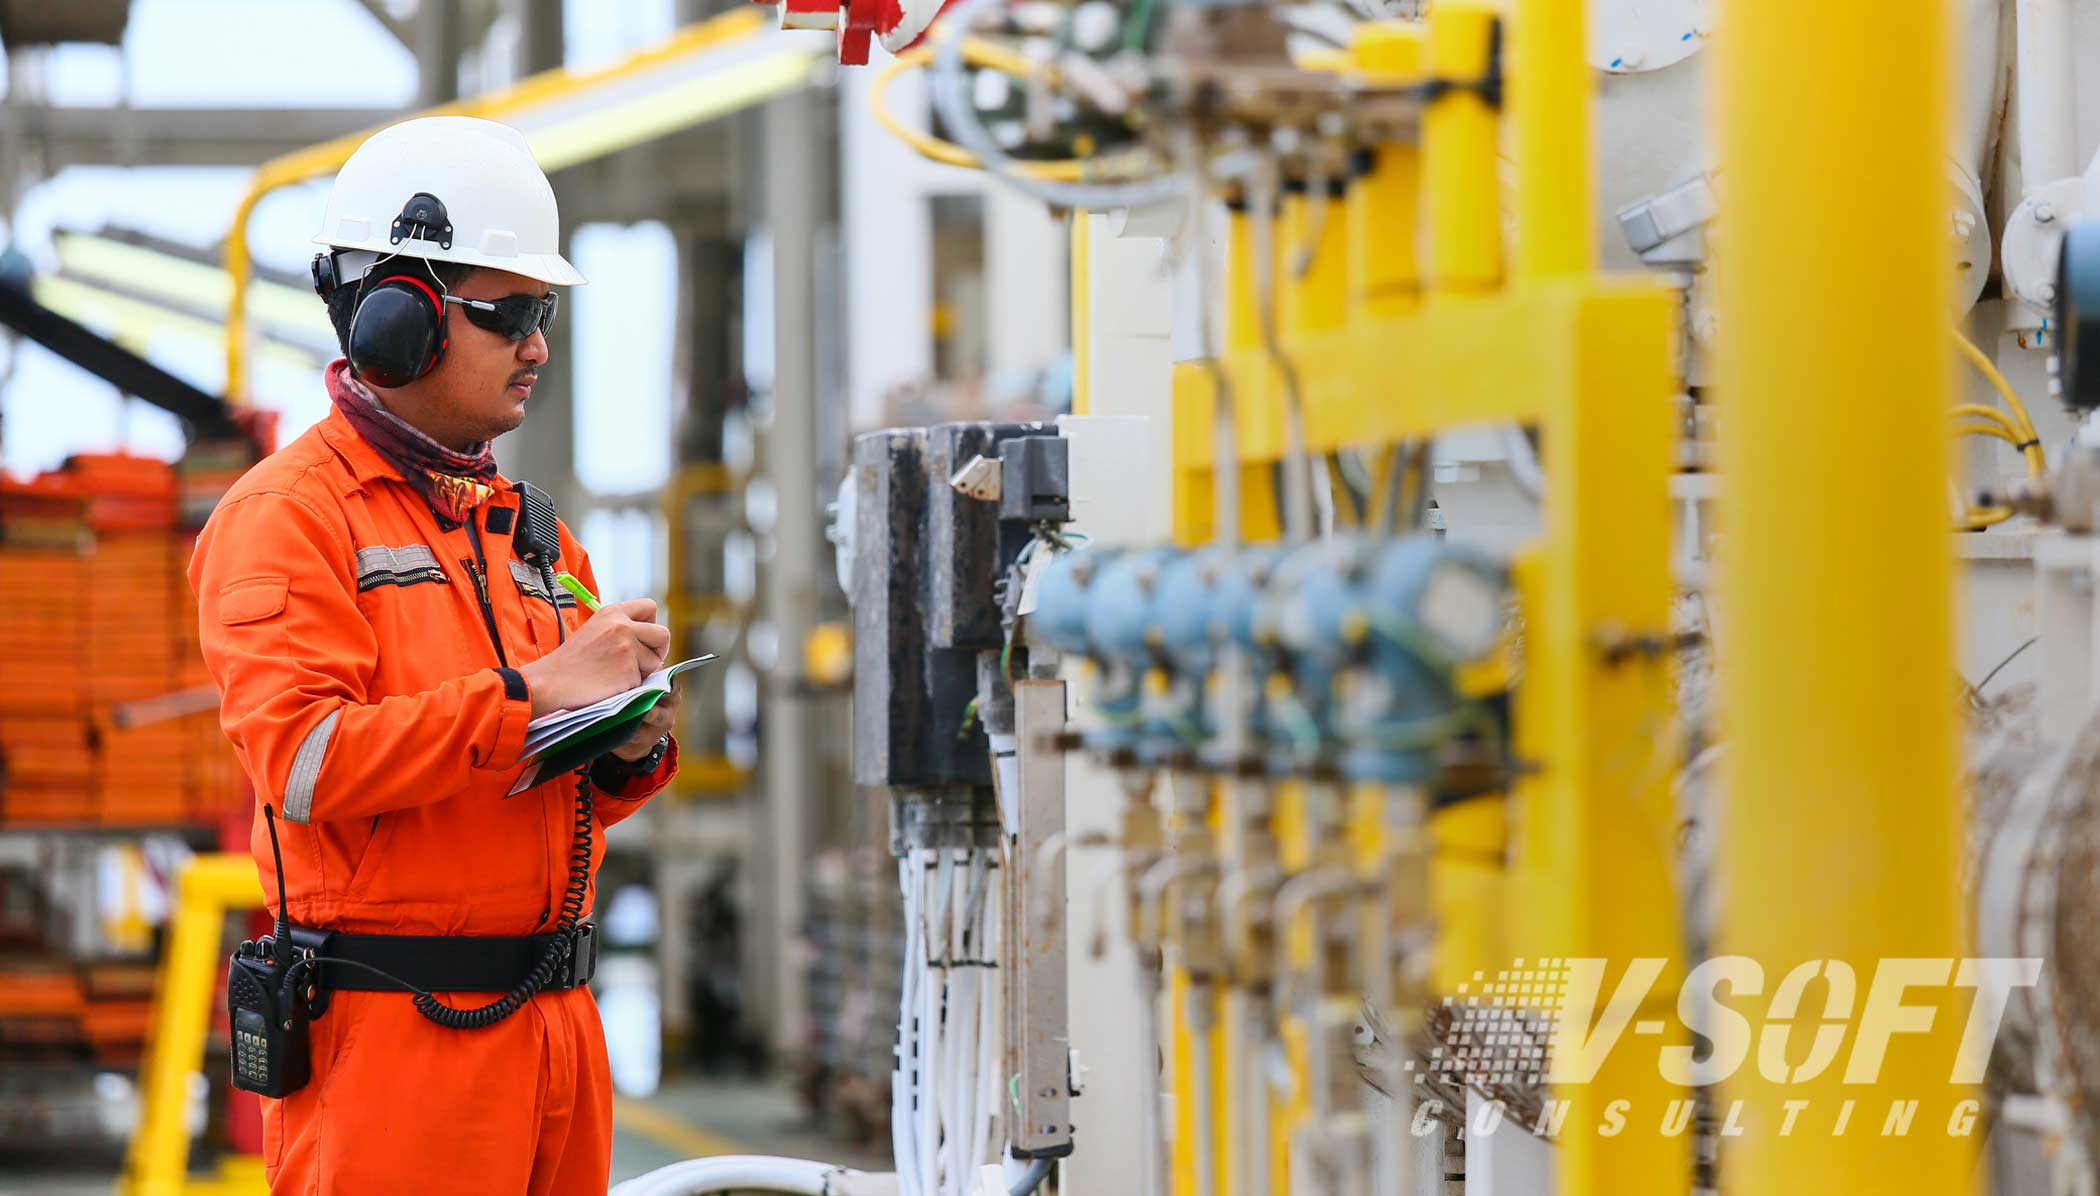 AI Detects and Oil Rig Operator Wearing Personal Protective Equipment